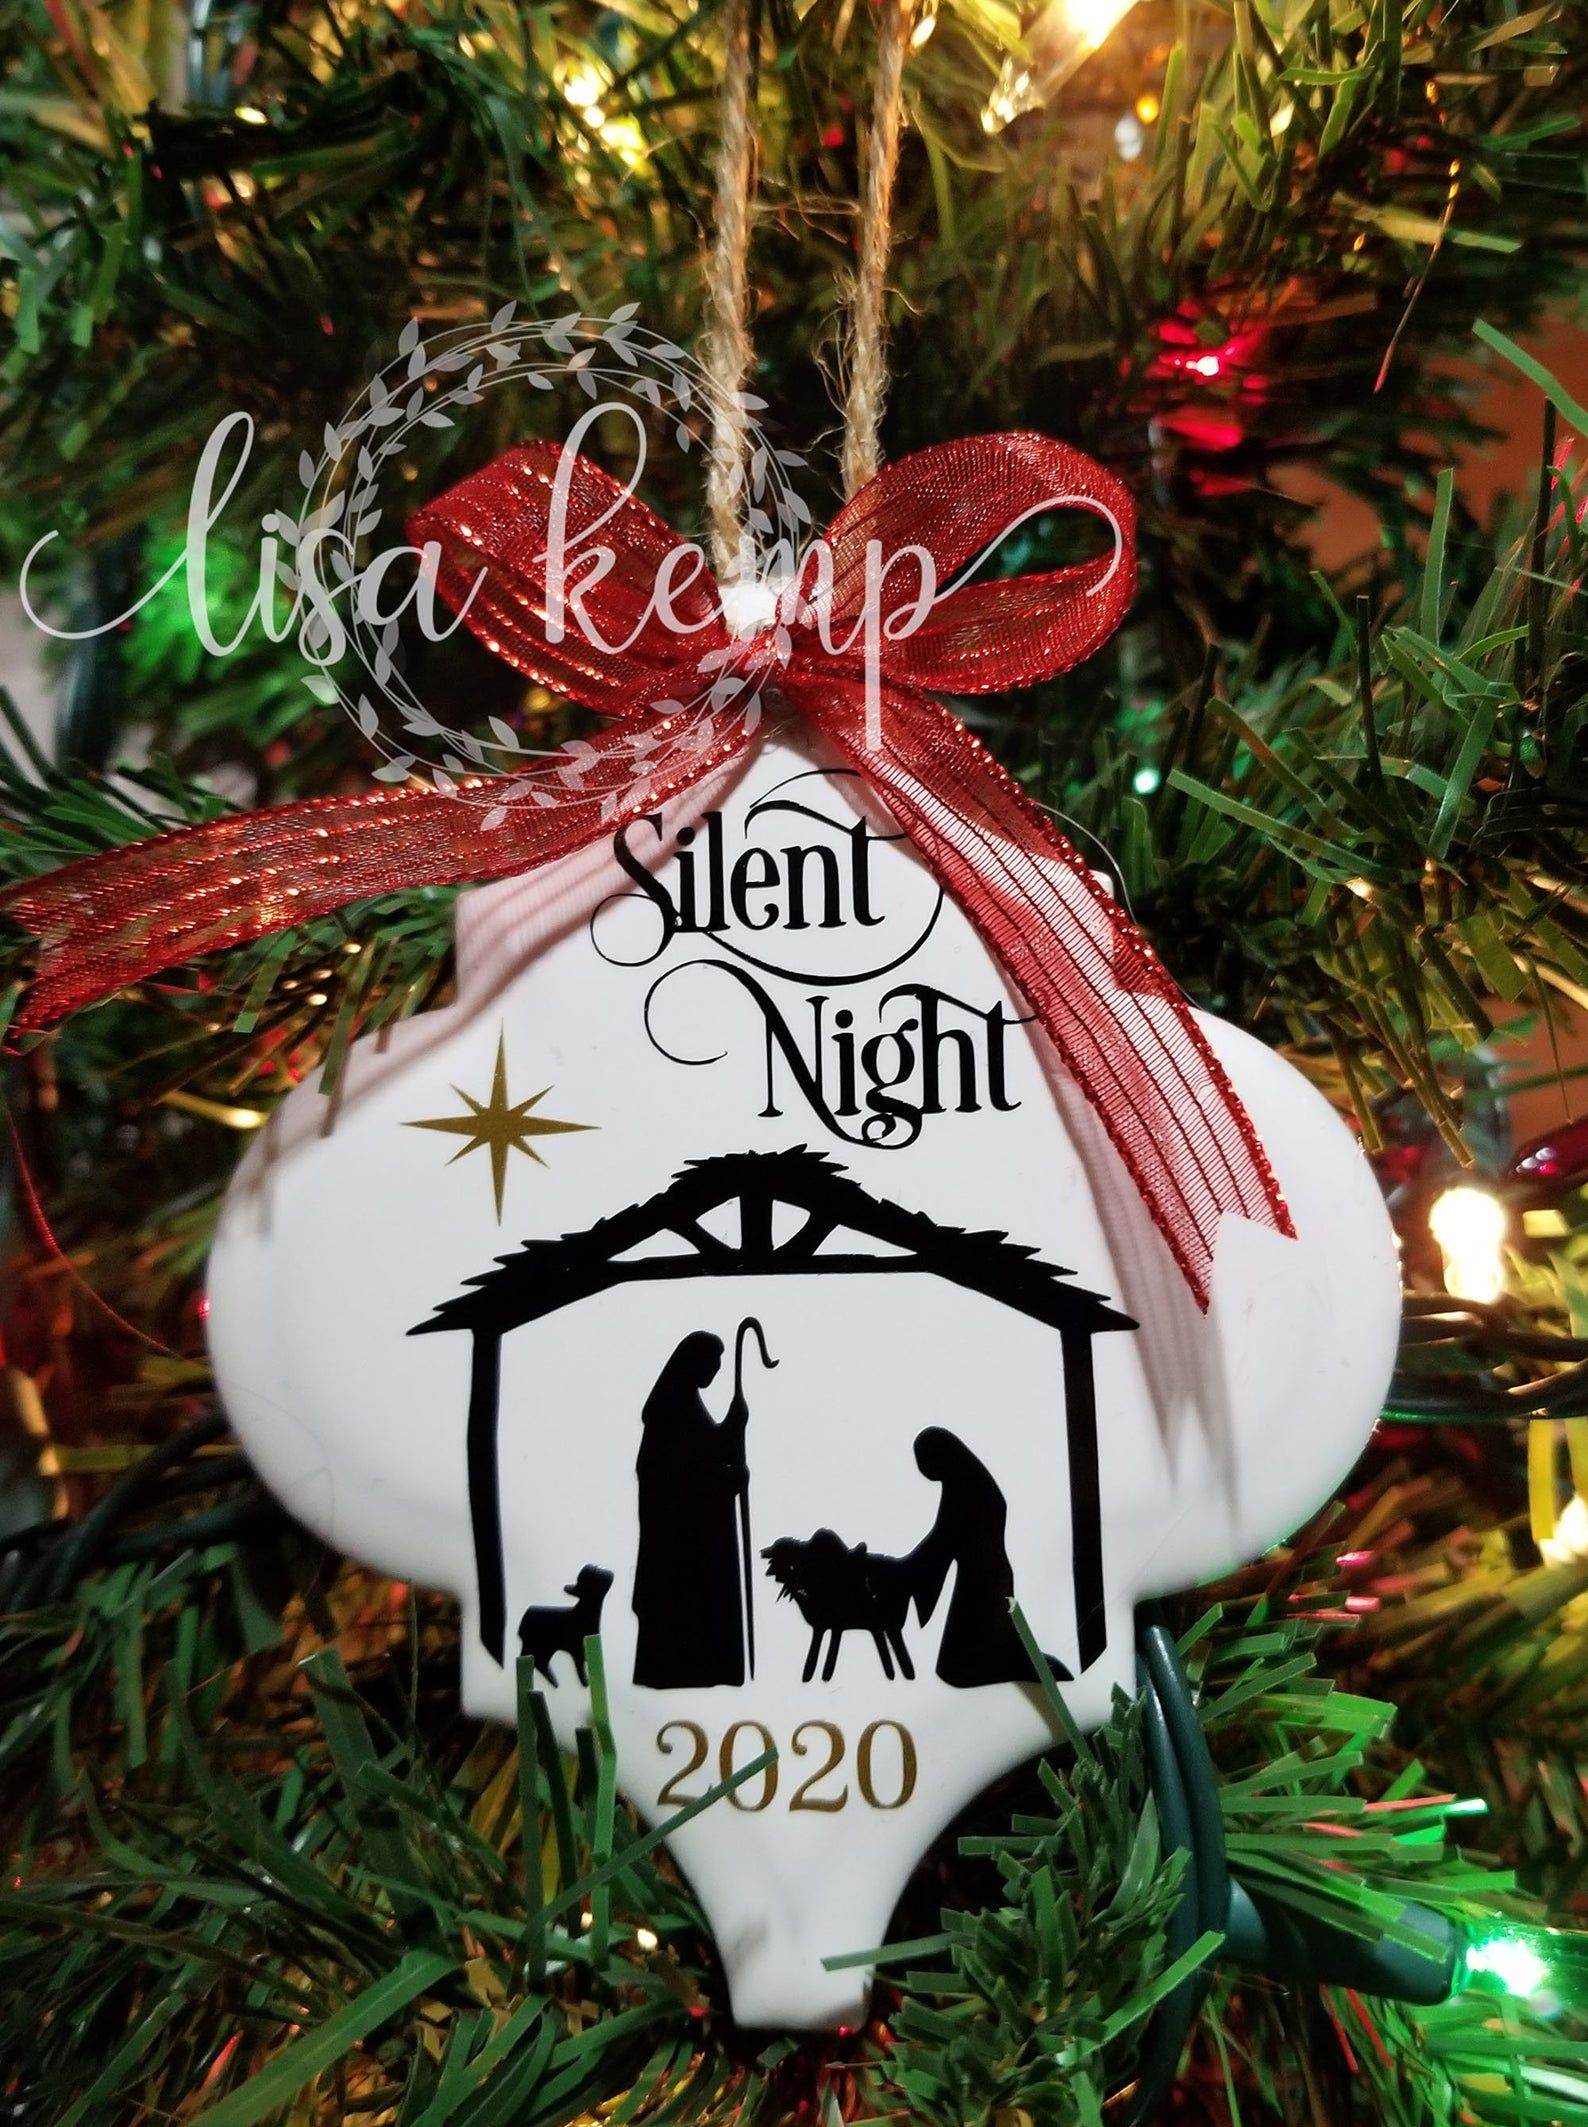 Silent Night Nativity Scene Ceramic Lantern Tile Ornament Etsy In 2021 Homemade Christmas Ornaments Diy Christmas Ornaments To Make Christmas Ornament Crafts